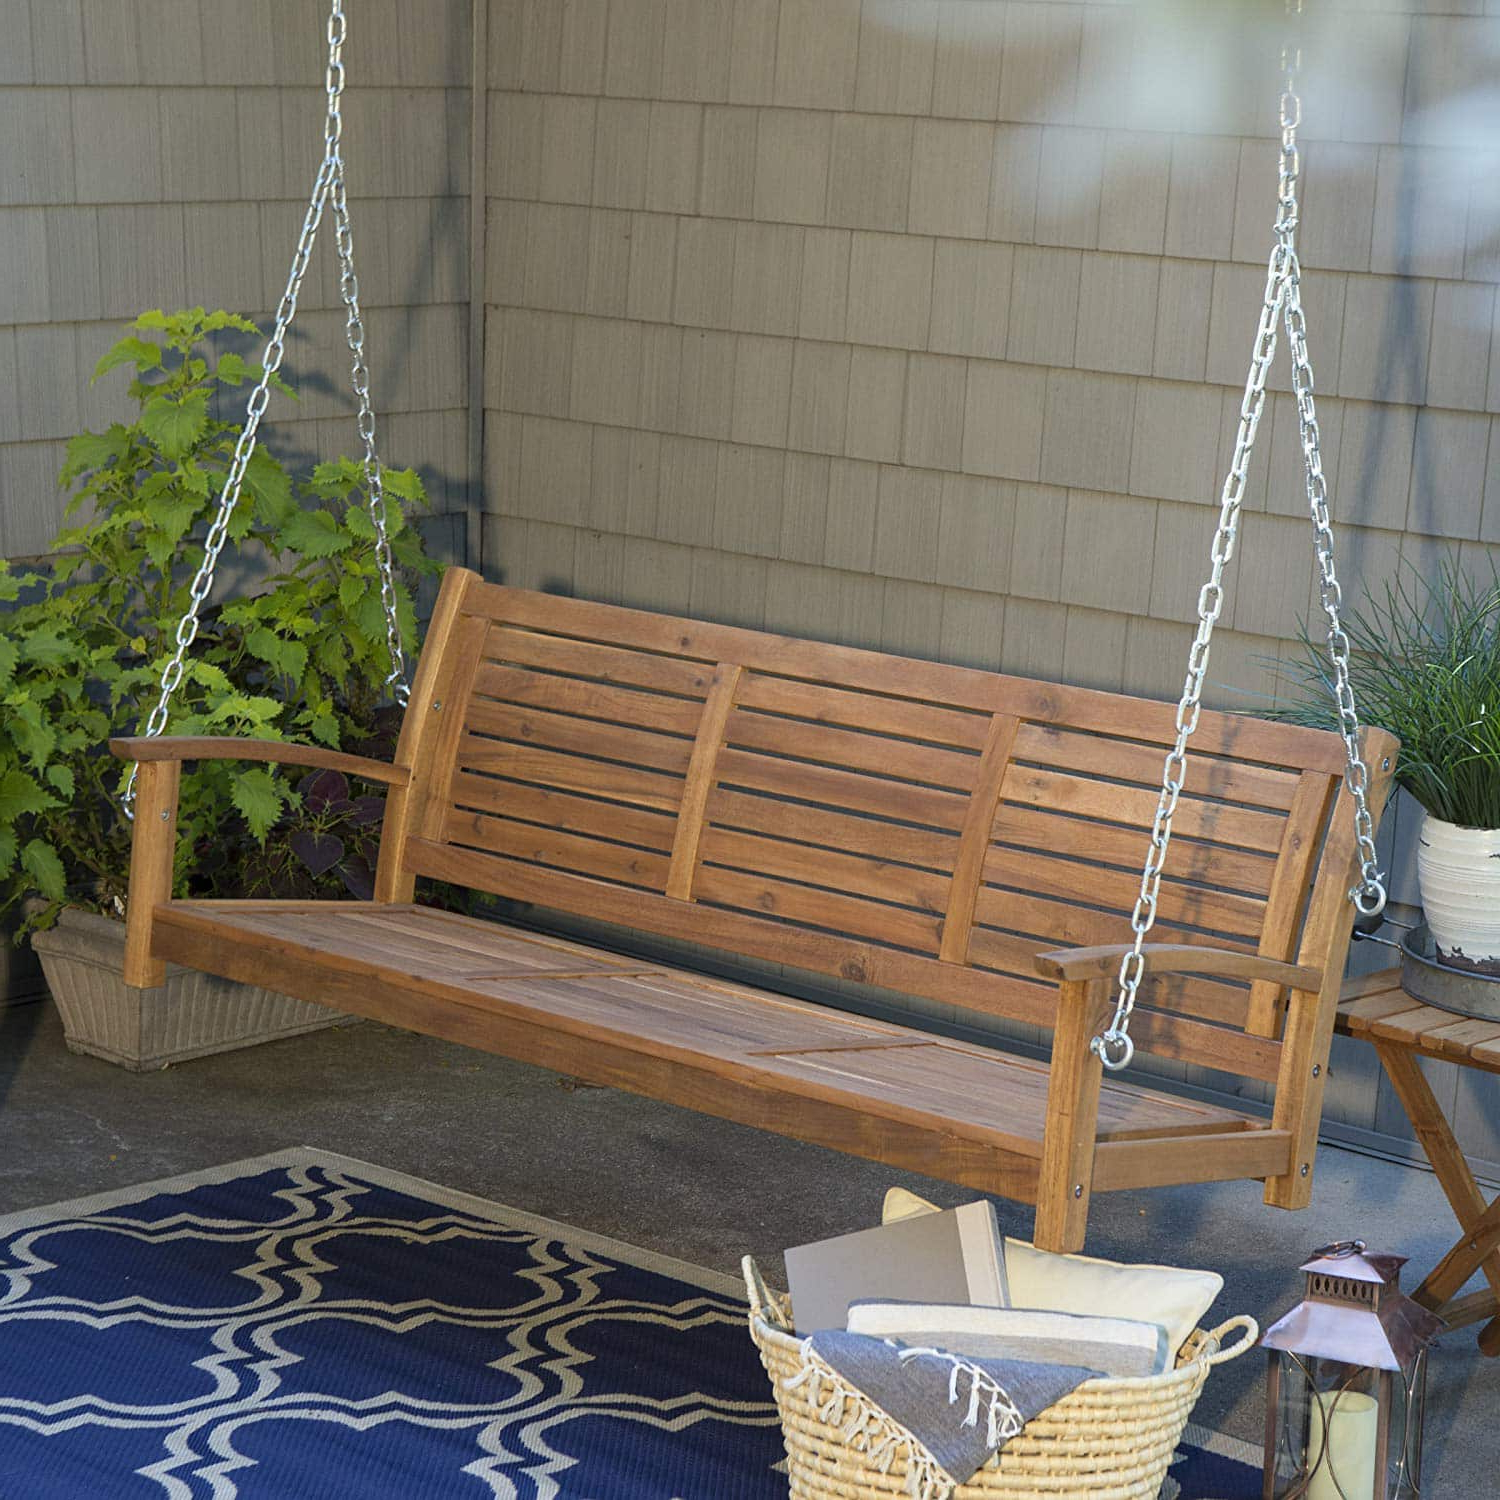 Buyer's Guide Pertaining To Canopy Patio Porch Swings With Pillows And Cup Holders (View 17 of 25)